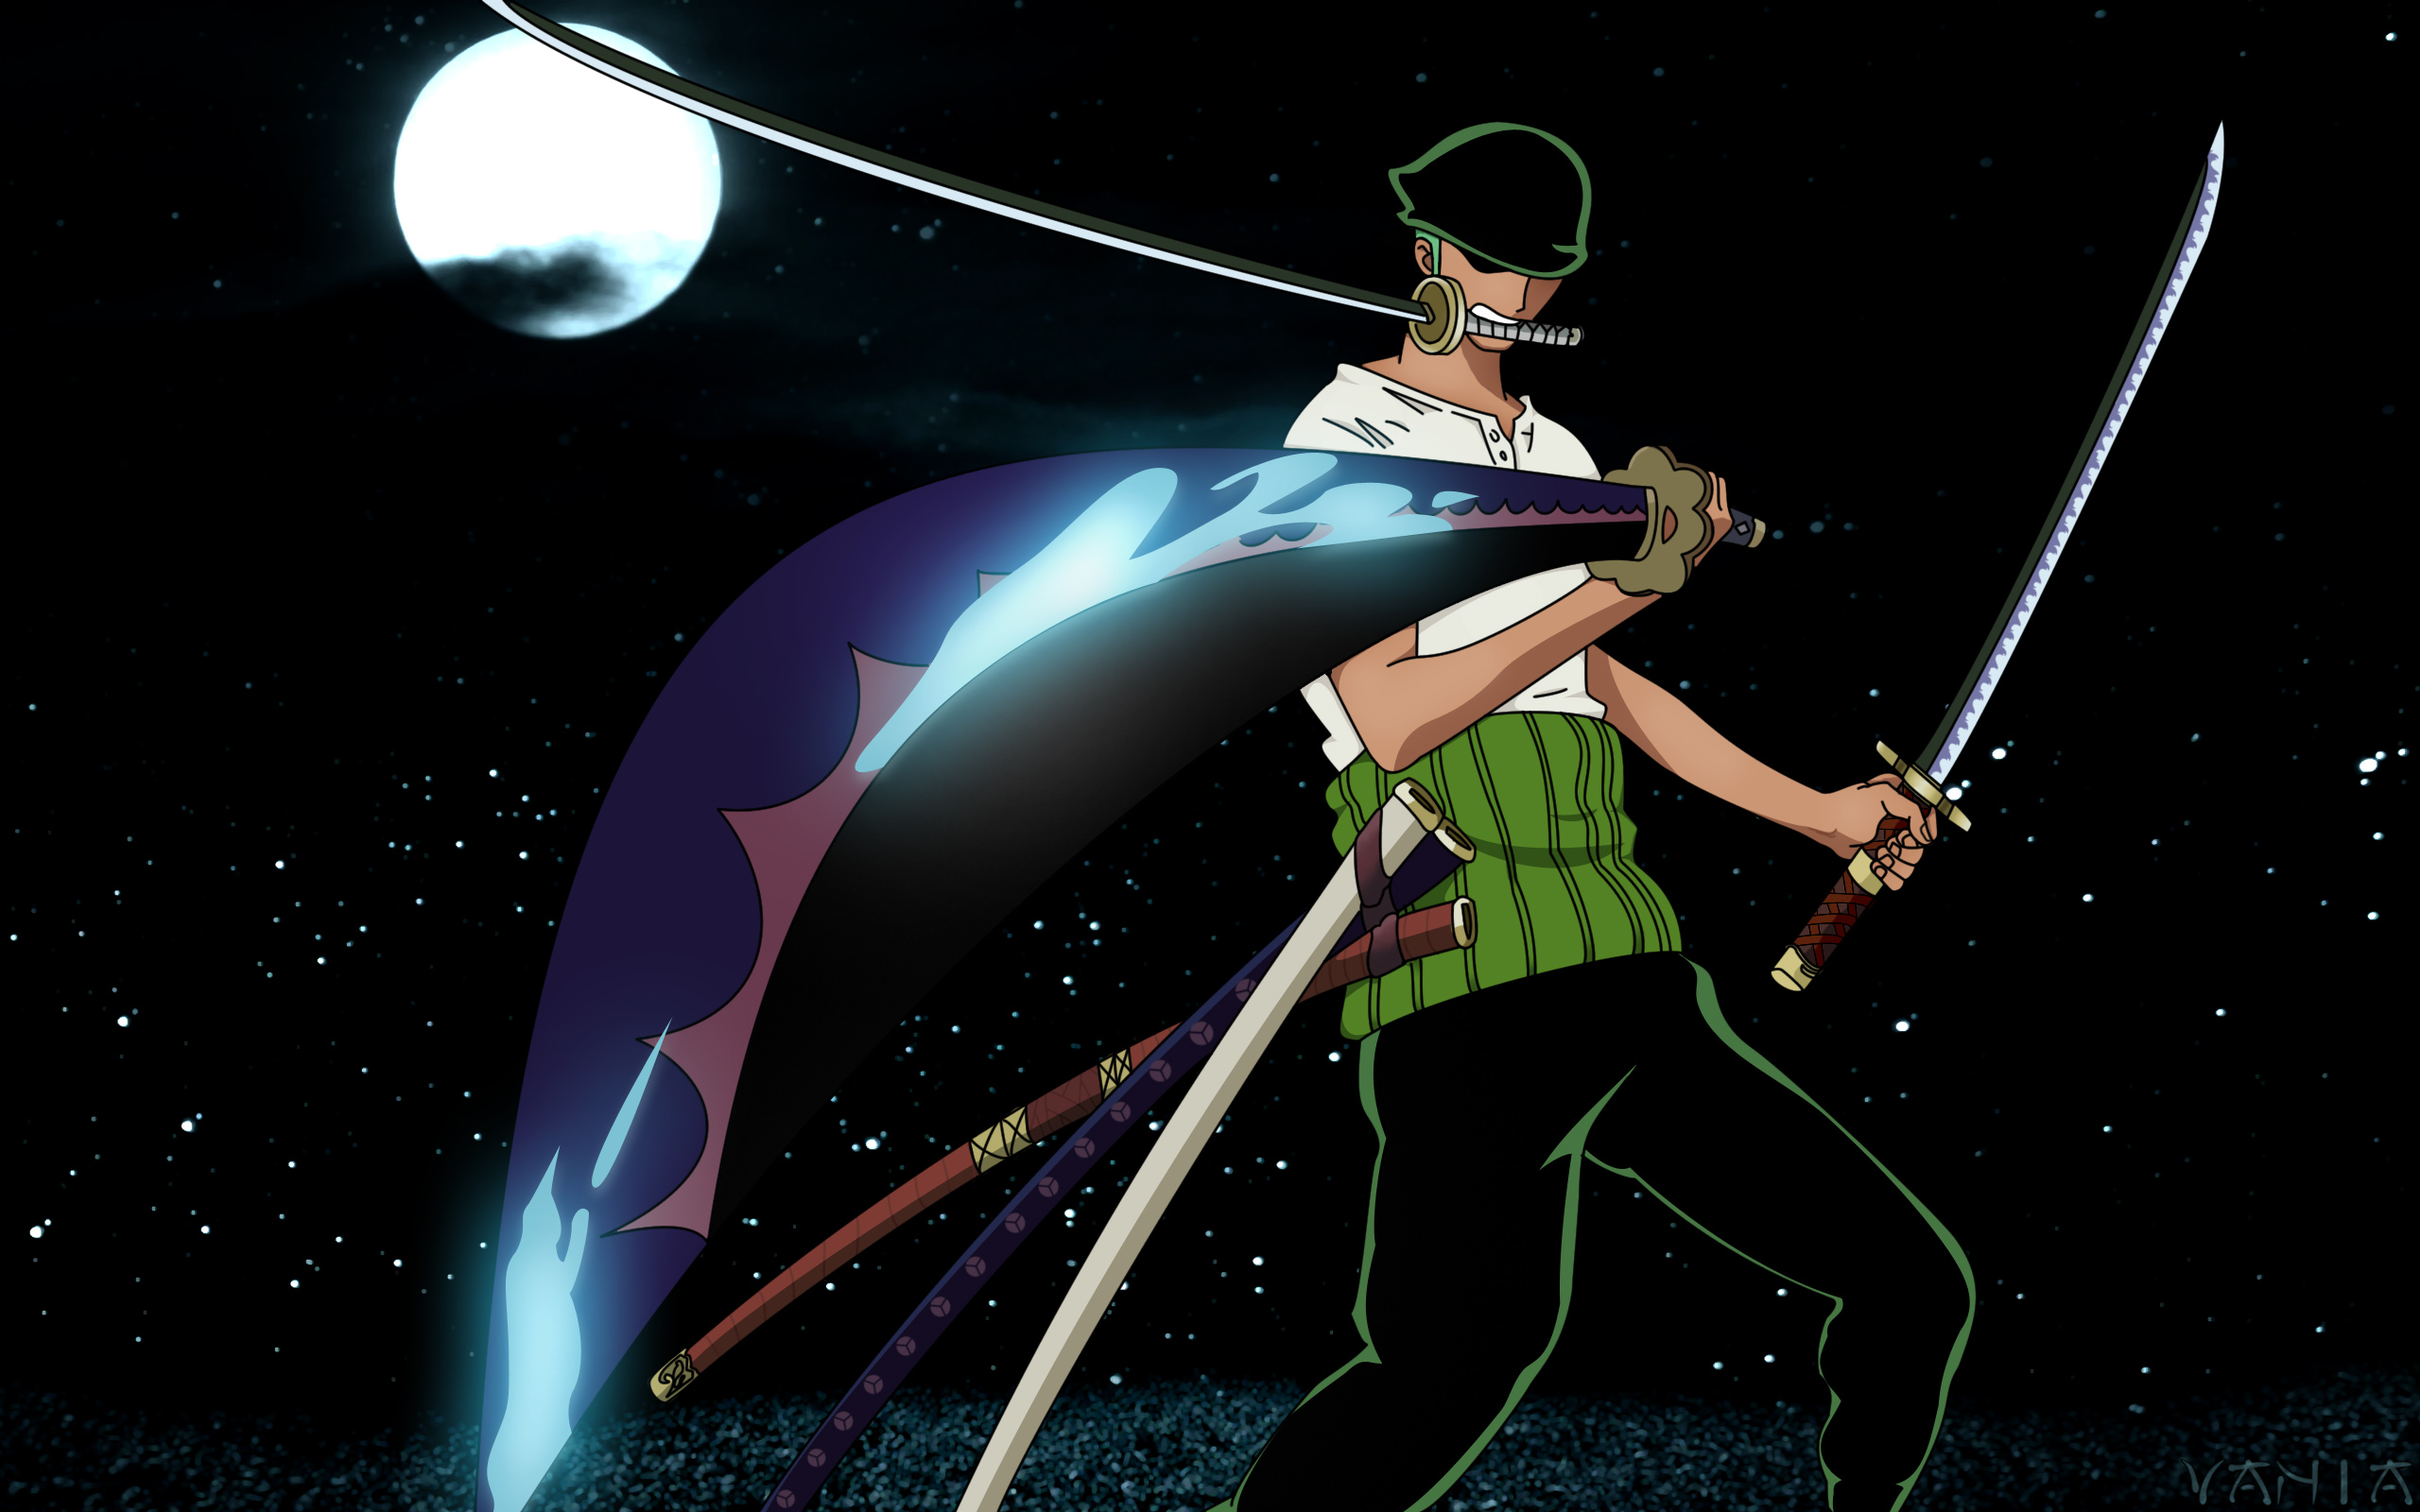 Hd wallpaper one piece zoro - Tags Anime One Piece Roronoa Zoro Hd Wallpaper Wallpaper The